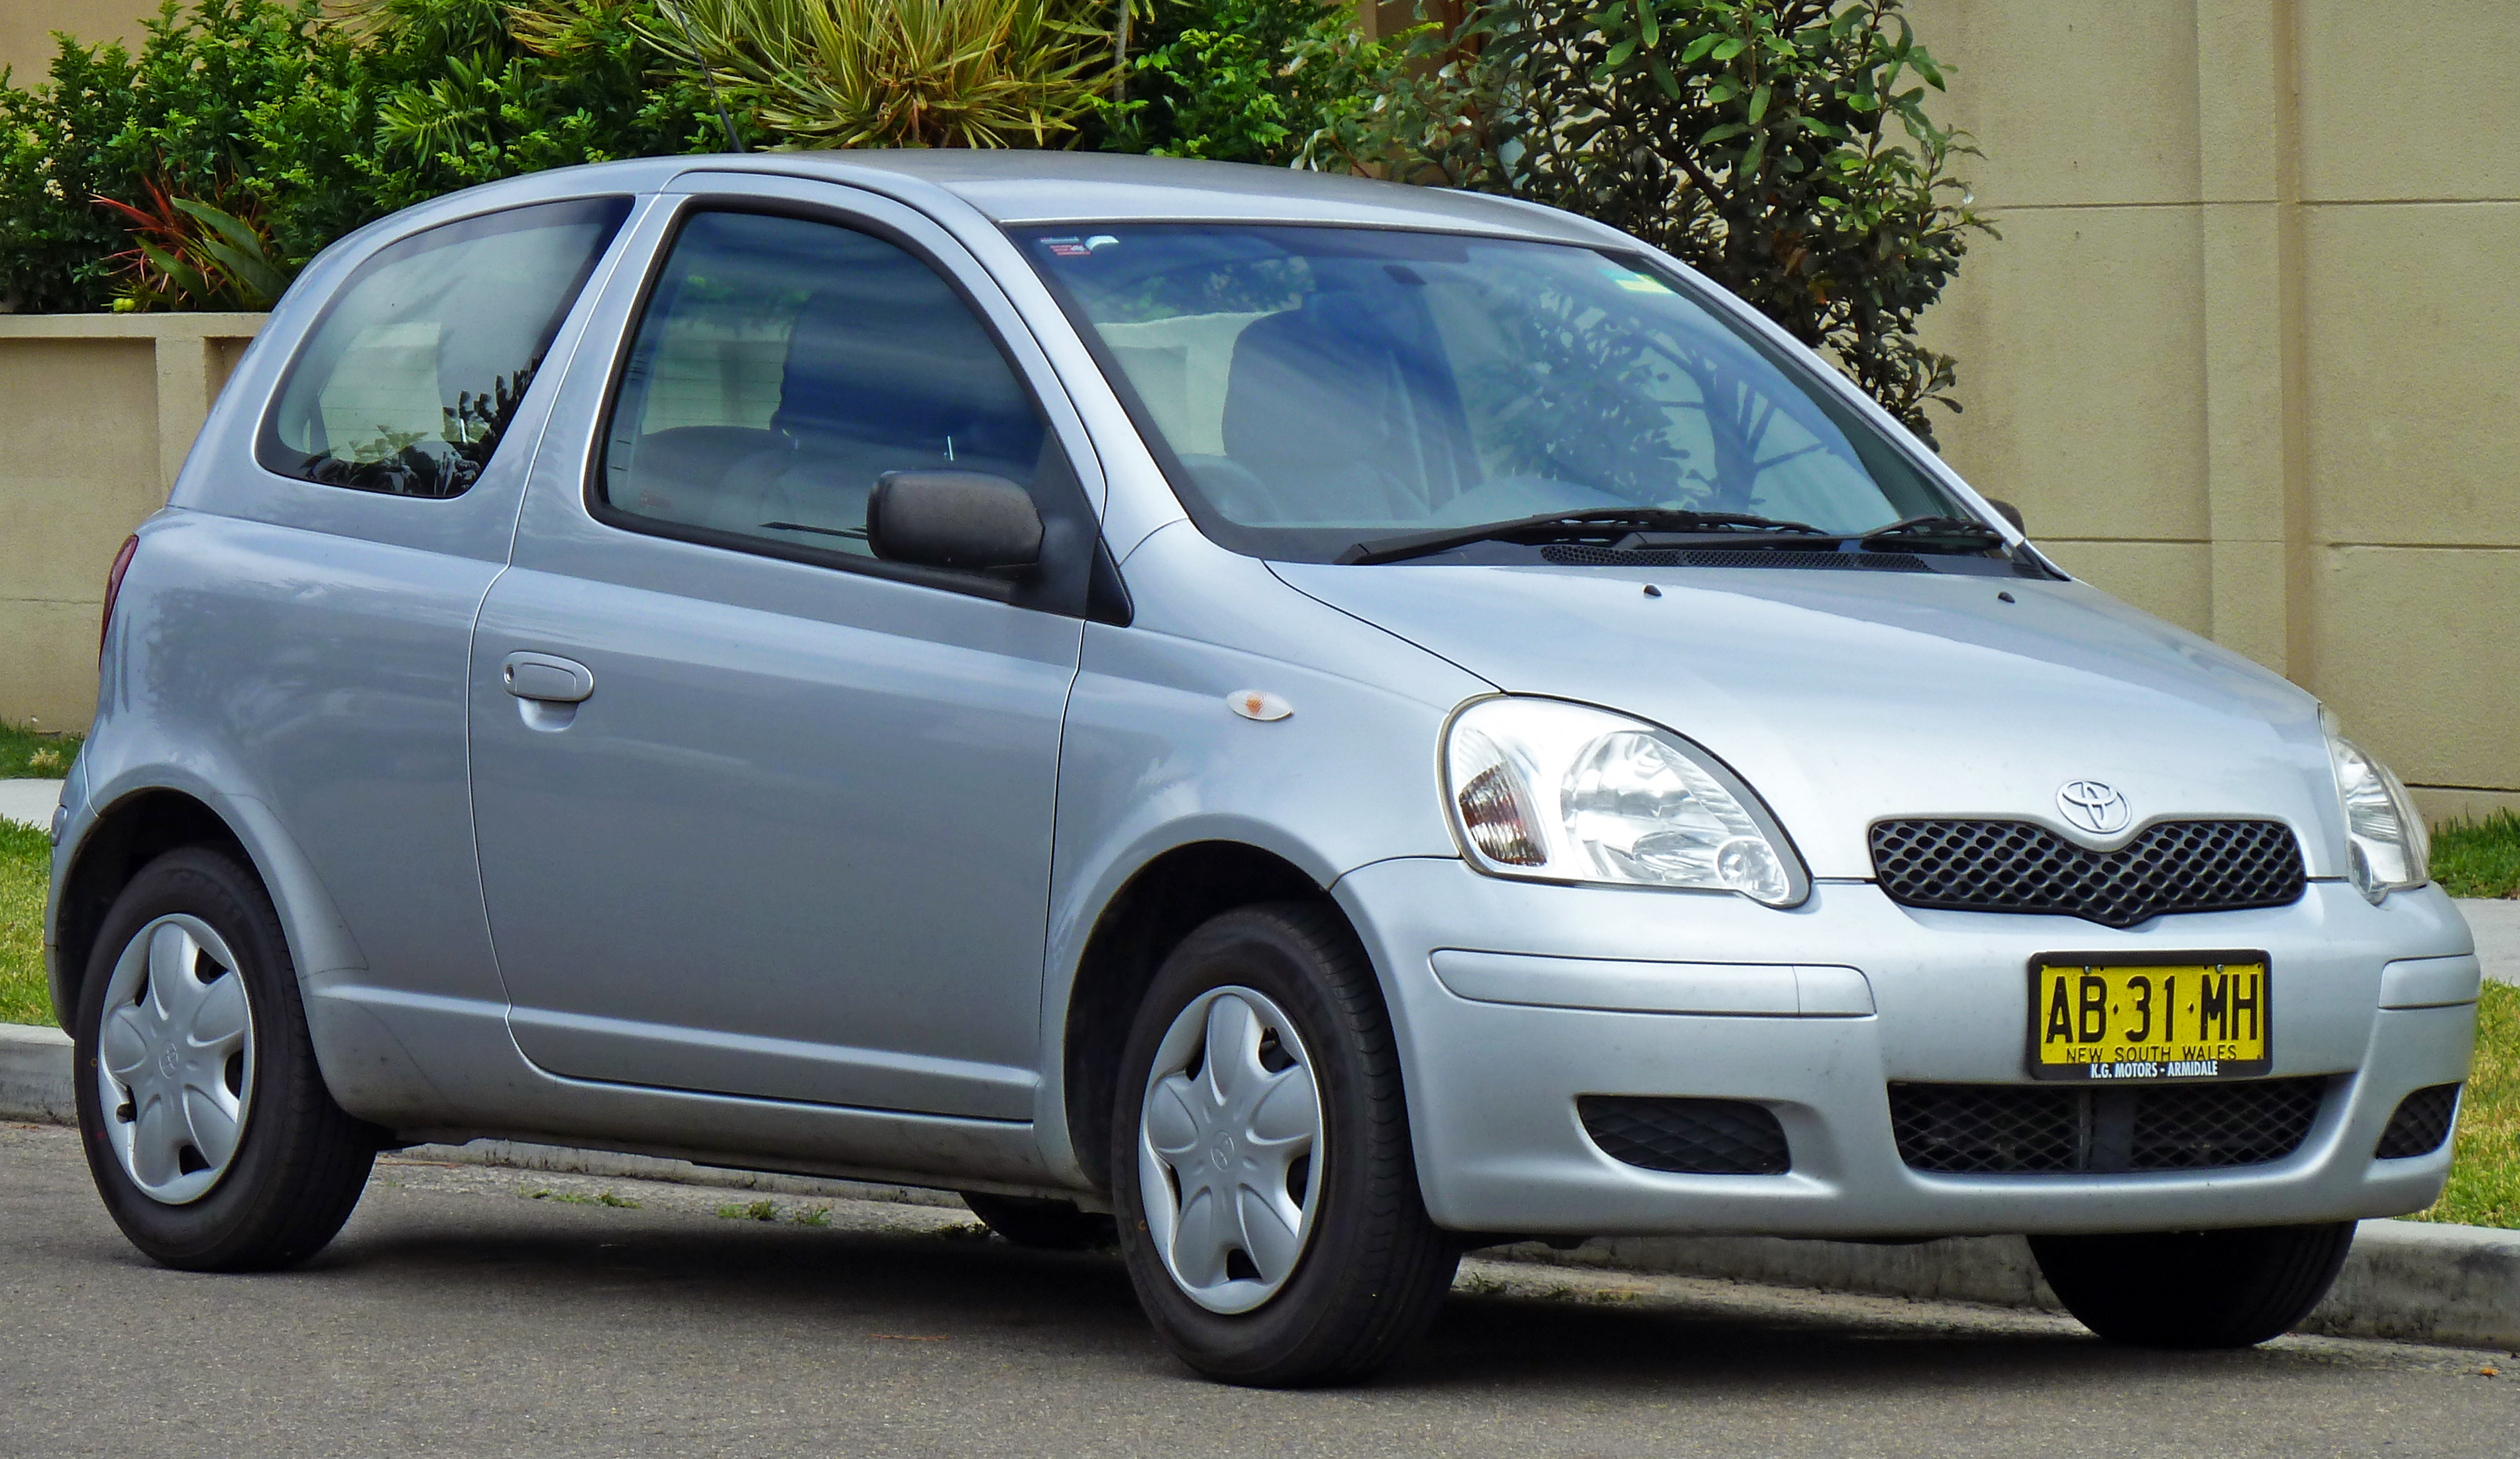 Pictures of toyota yaris (p1) 2003 #13